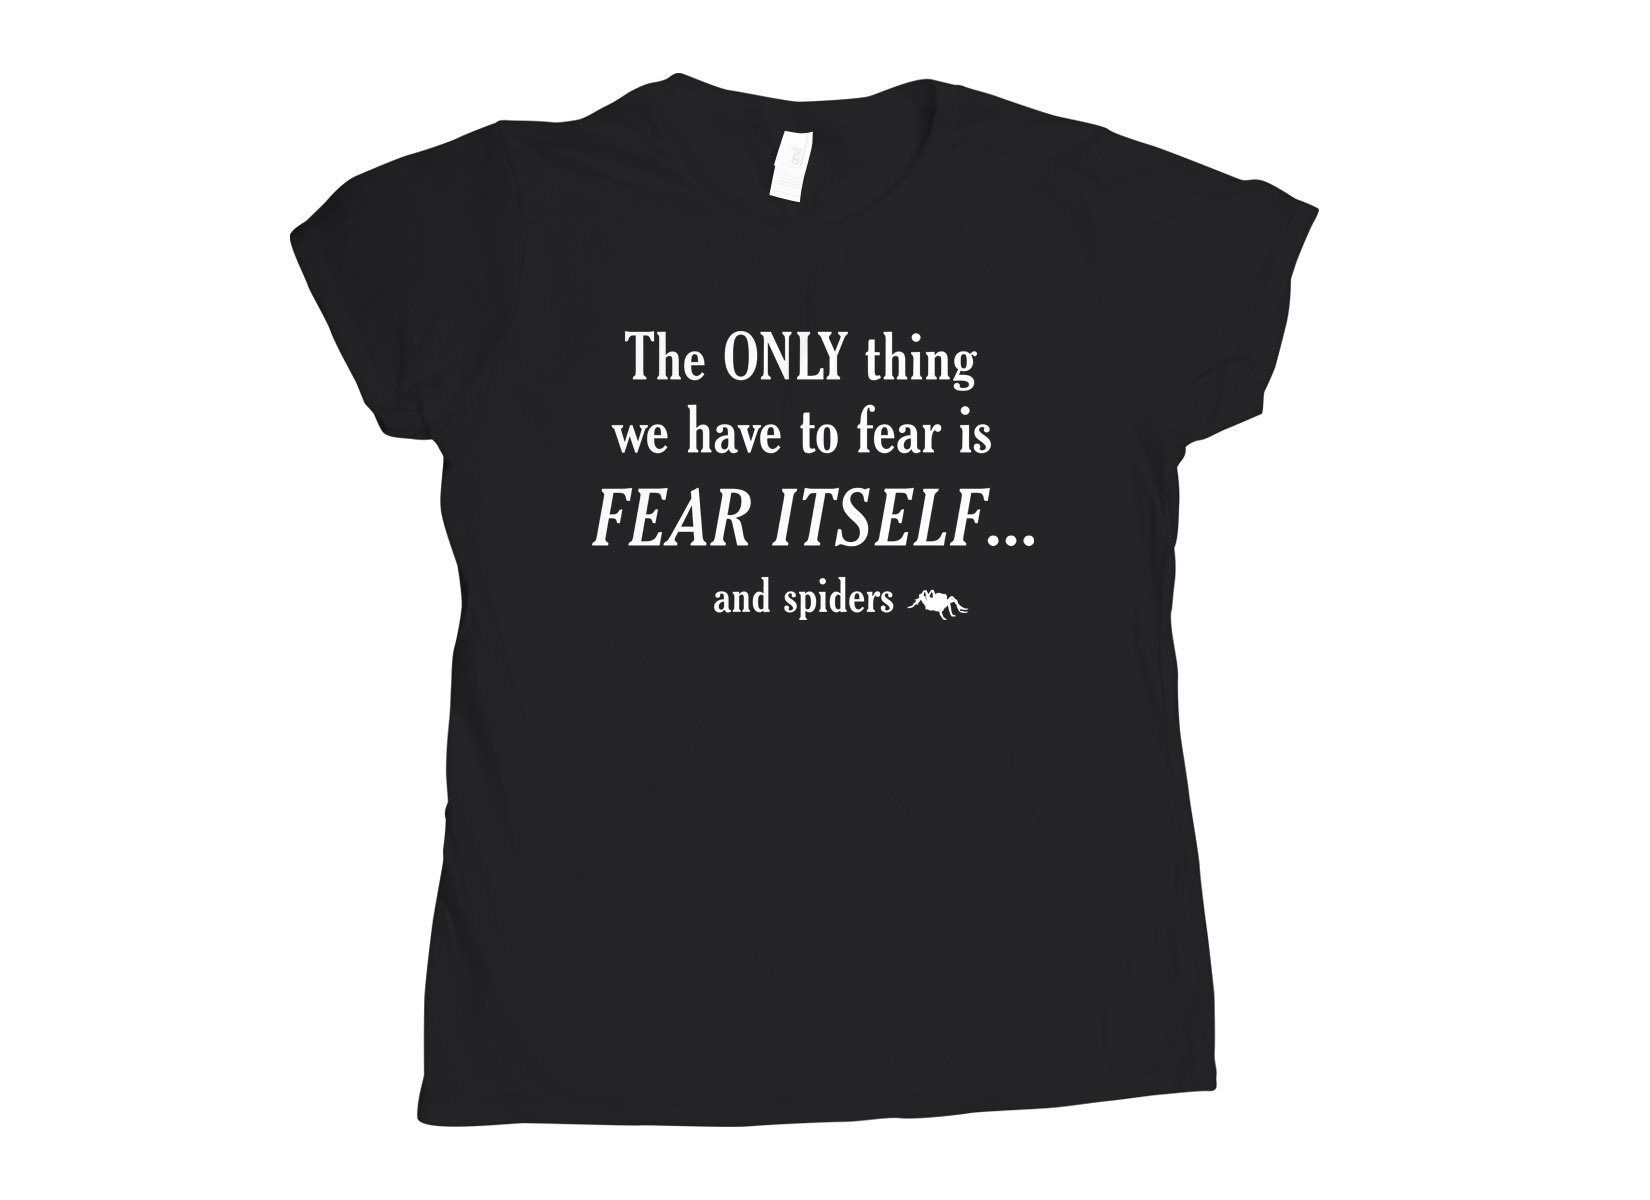 The only thing we have to fear on Womens T-Shirt